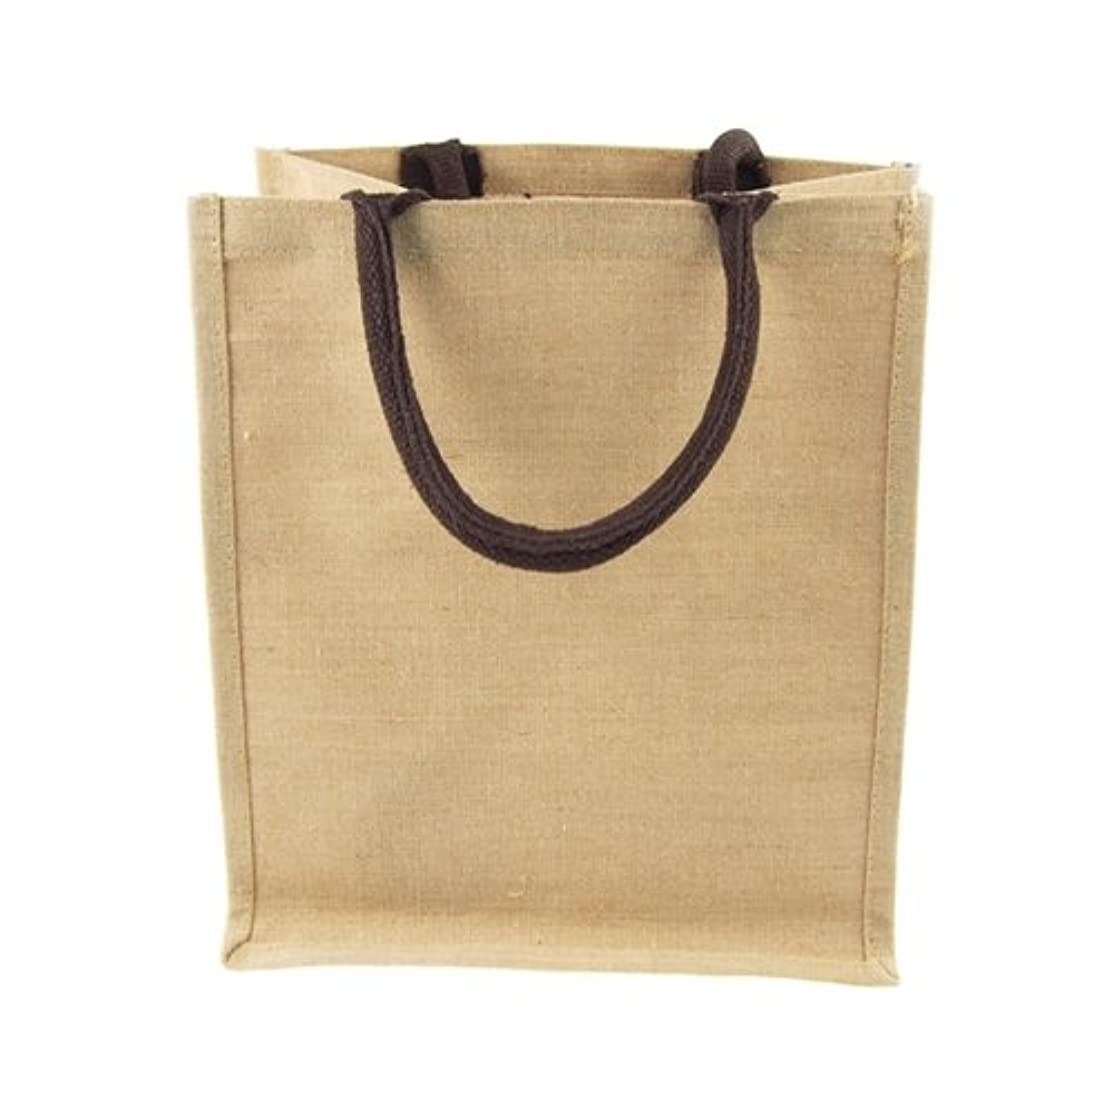 Homeford Firefly Imports Juco Tote Bag with Brown Gusset Handle, 12-Inch